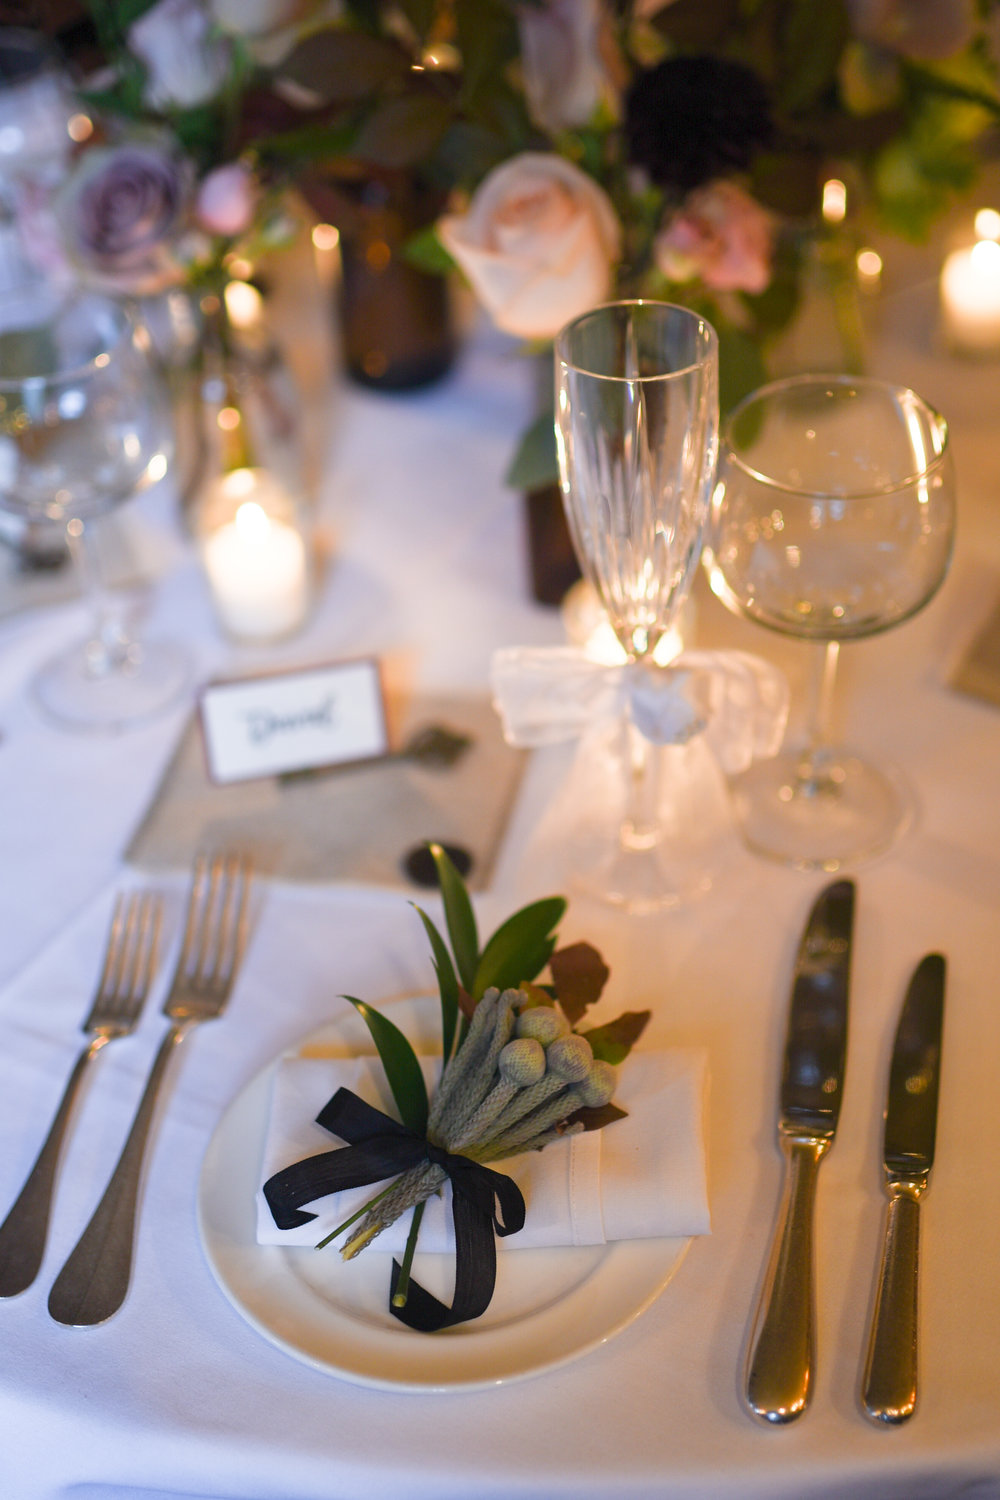 A tiny bouquet with greens for the place settings